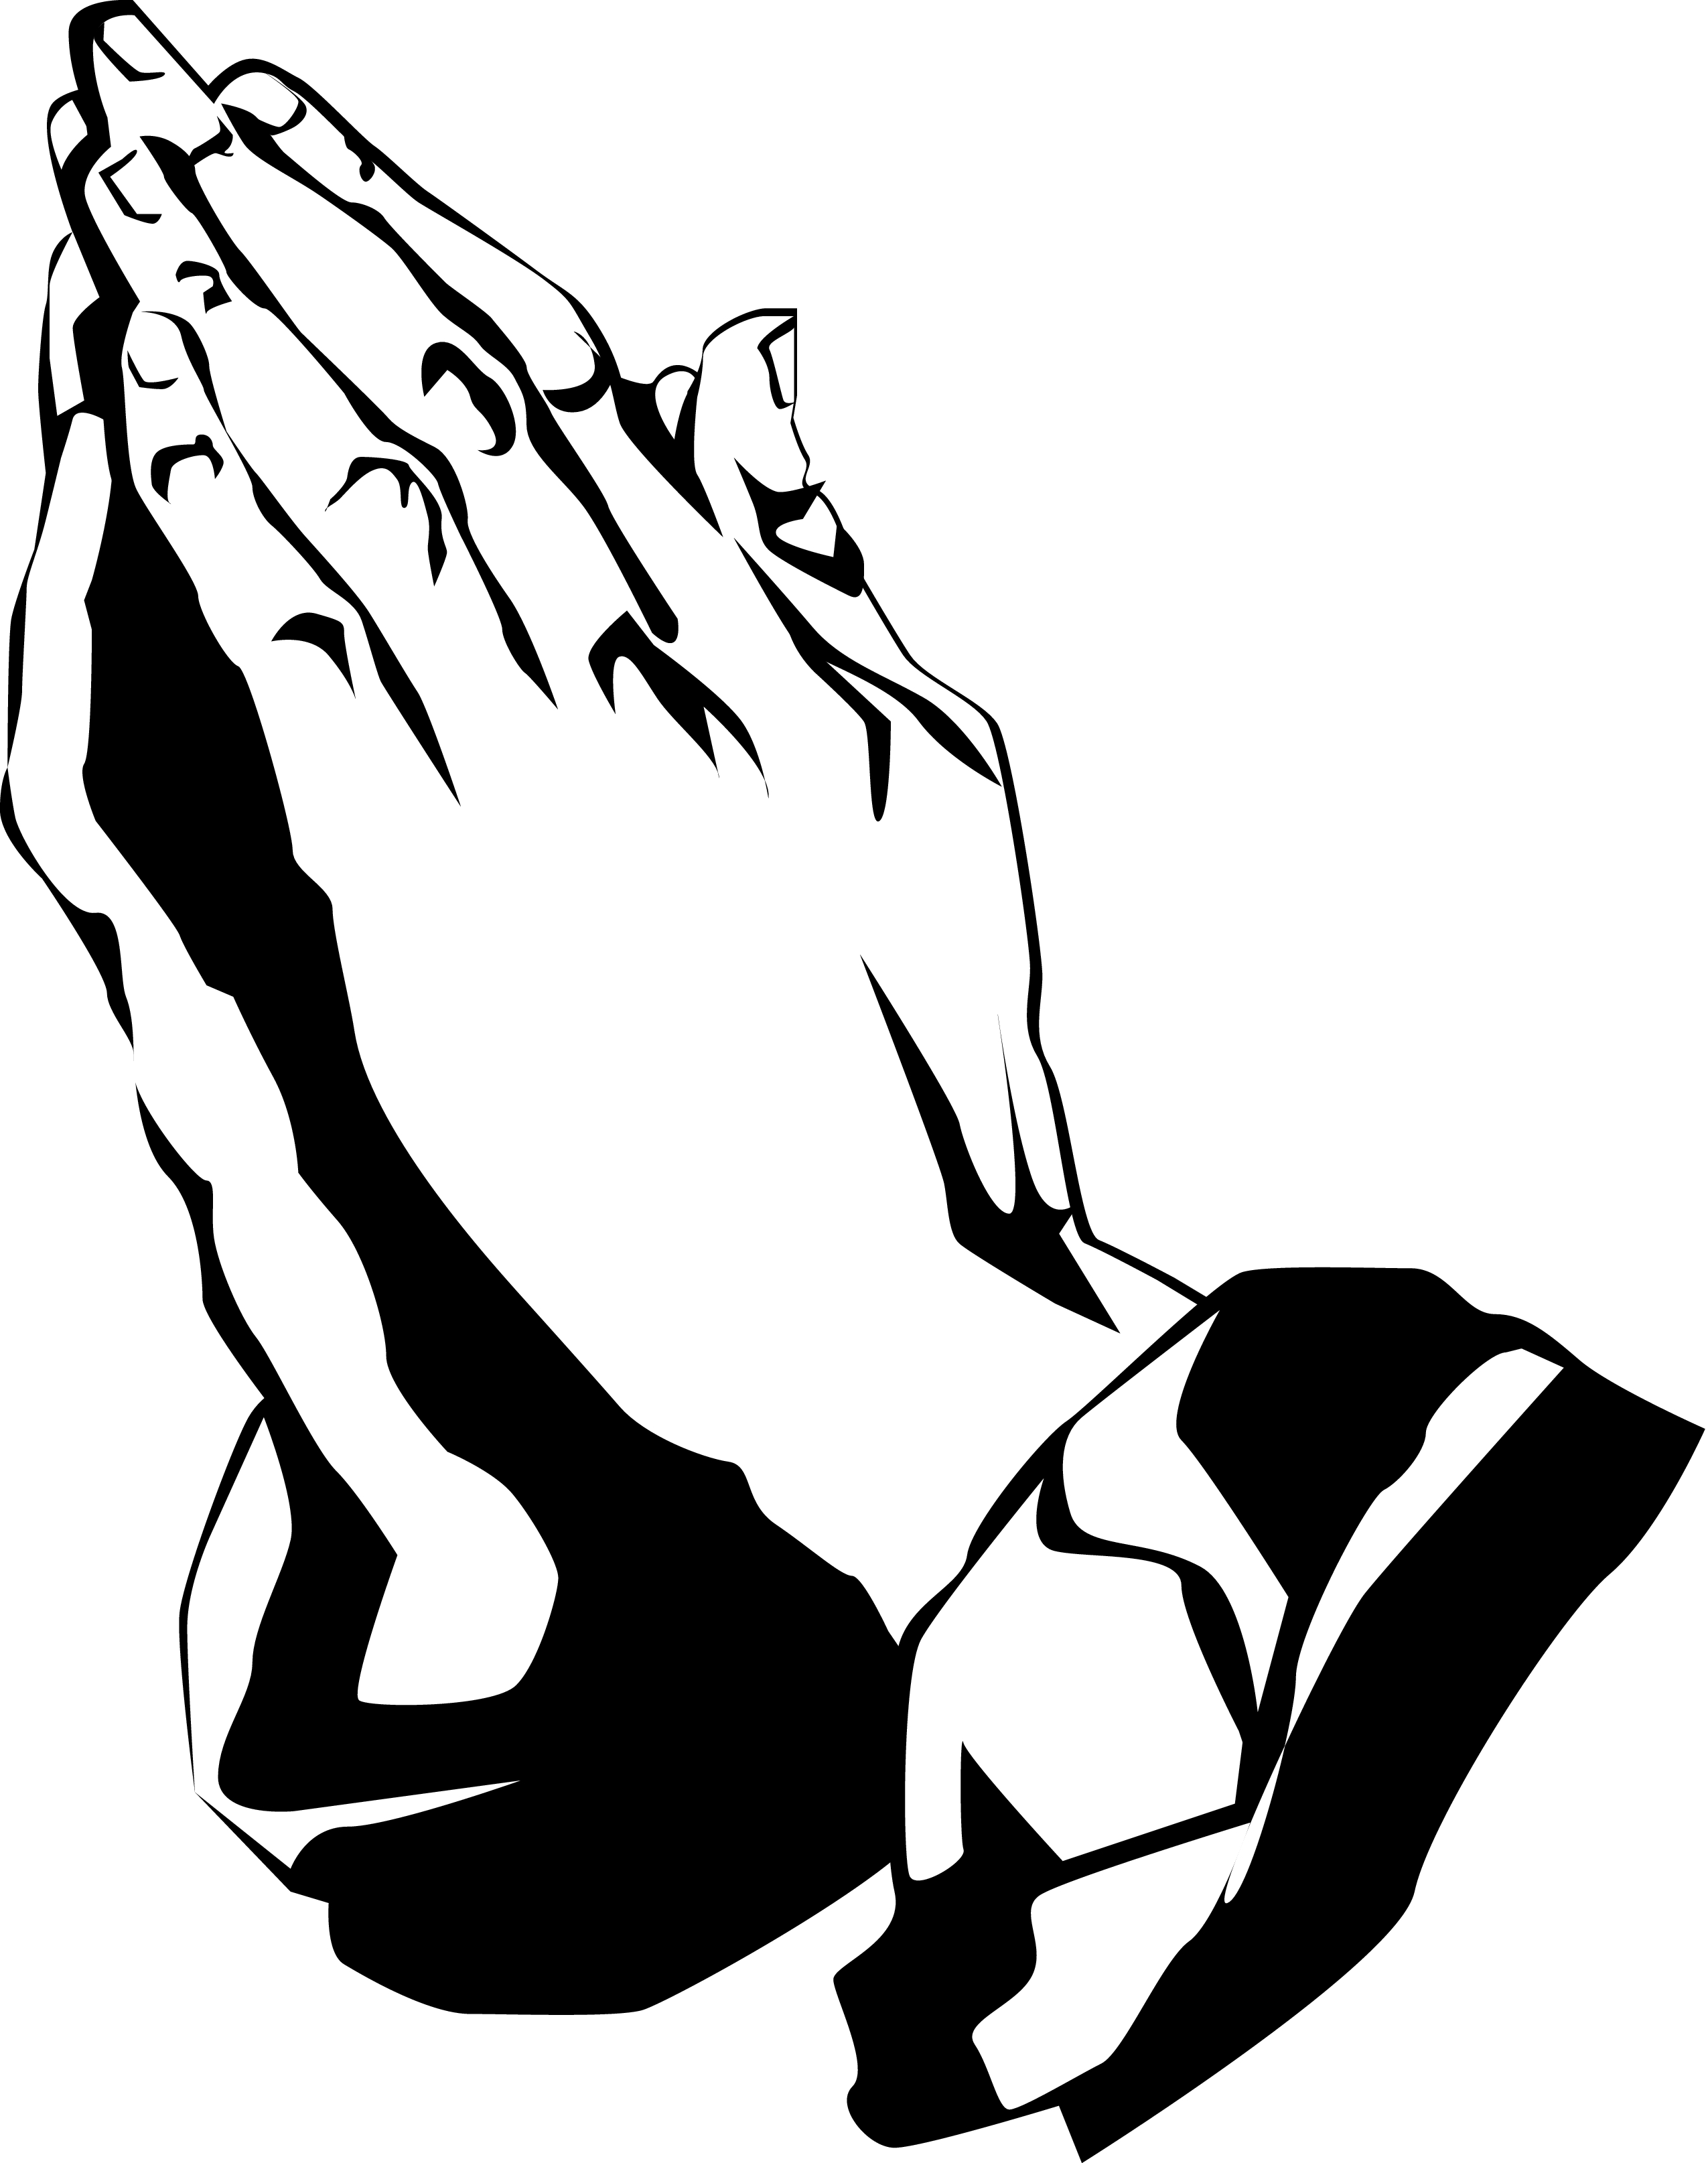 Free Prayer Cliparts, Download Free Clip Art, Free Clip Art.